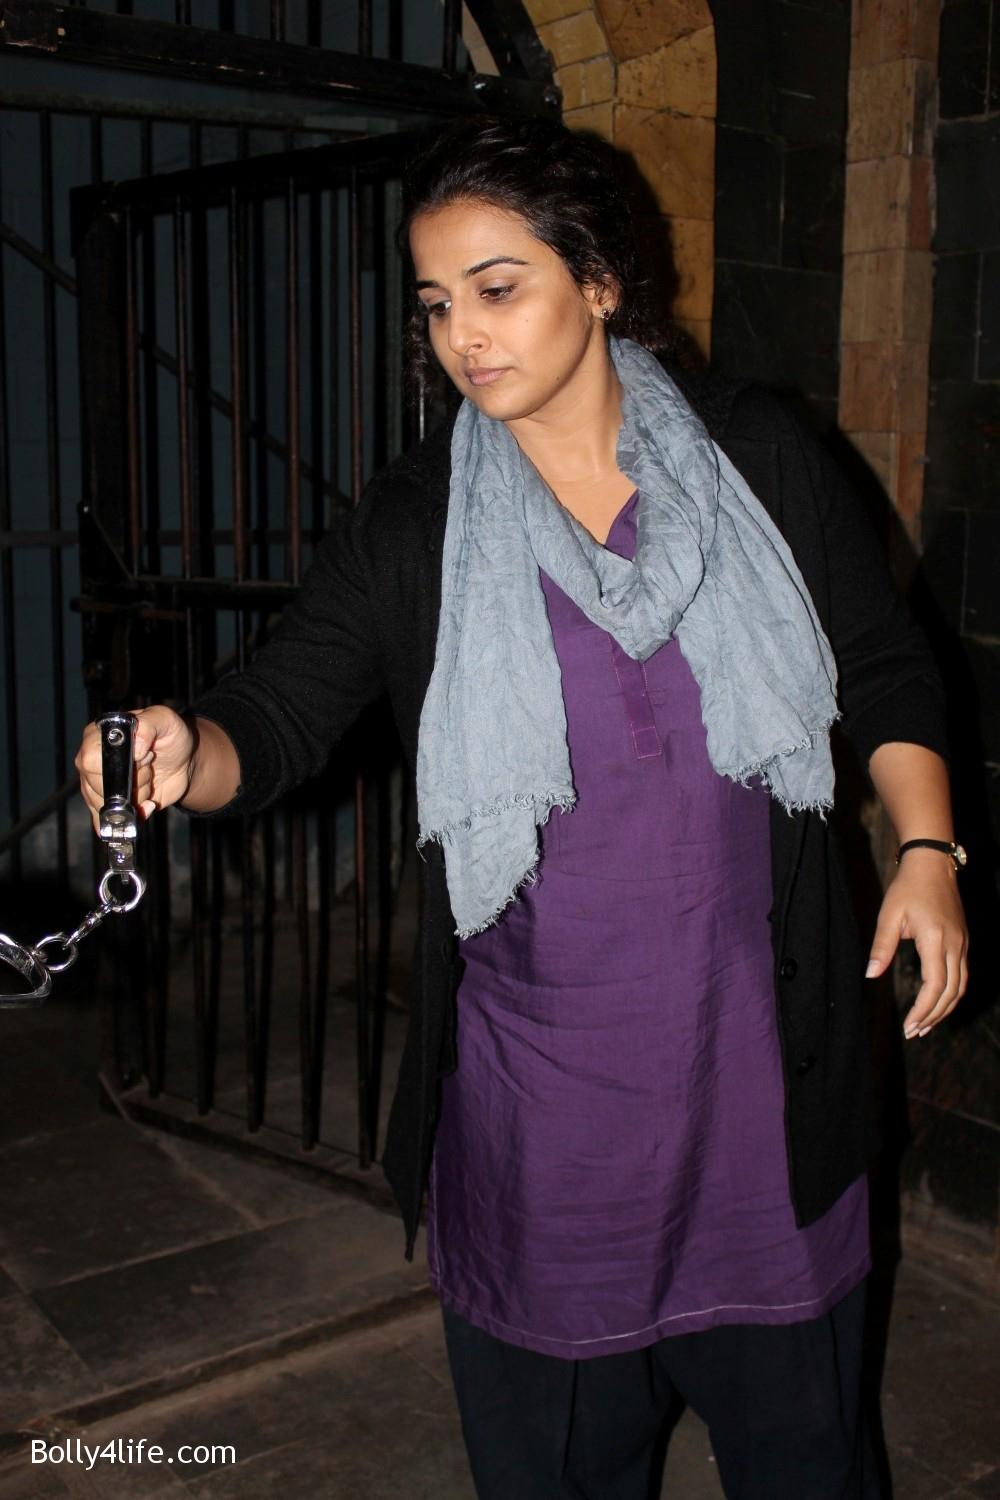 Vidya-Balan-during-the-Interview-for-film-Kahaani-2-11.jpg